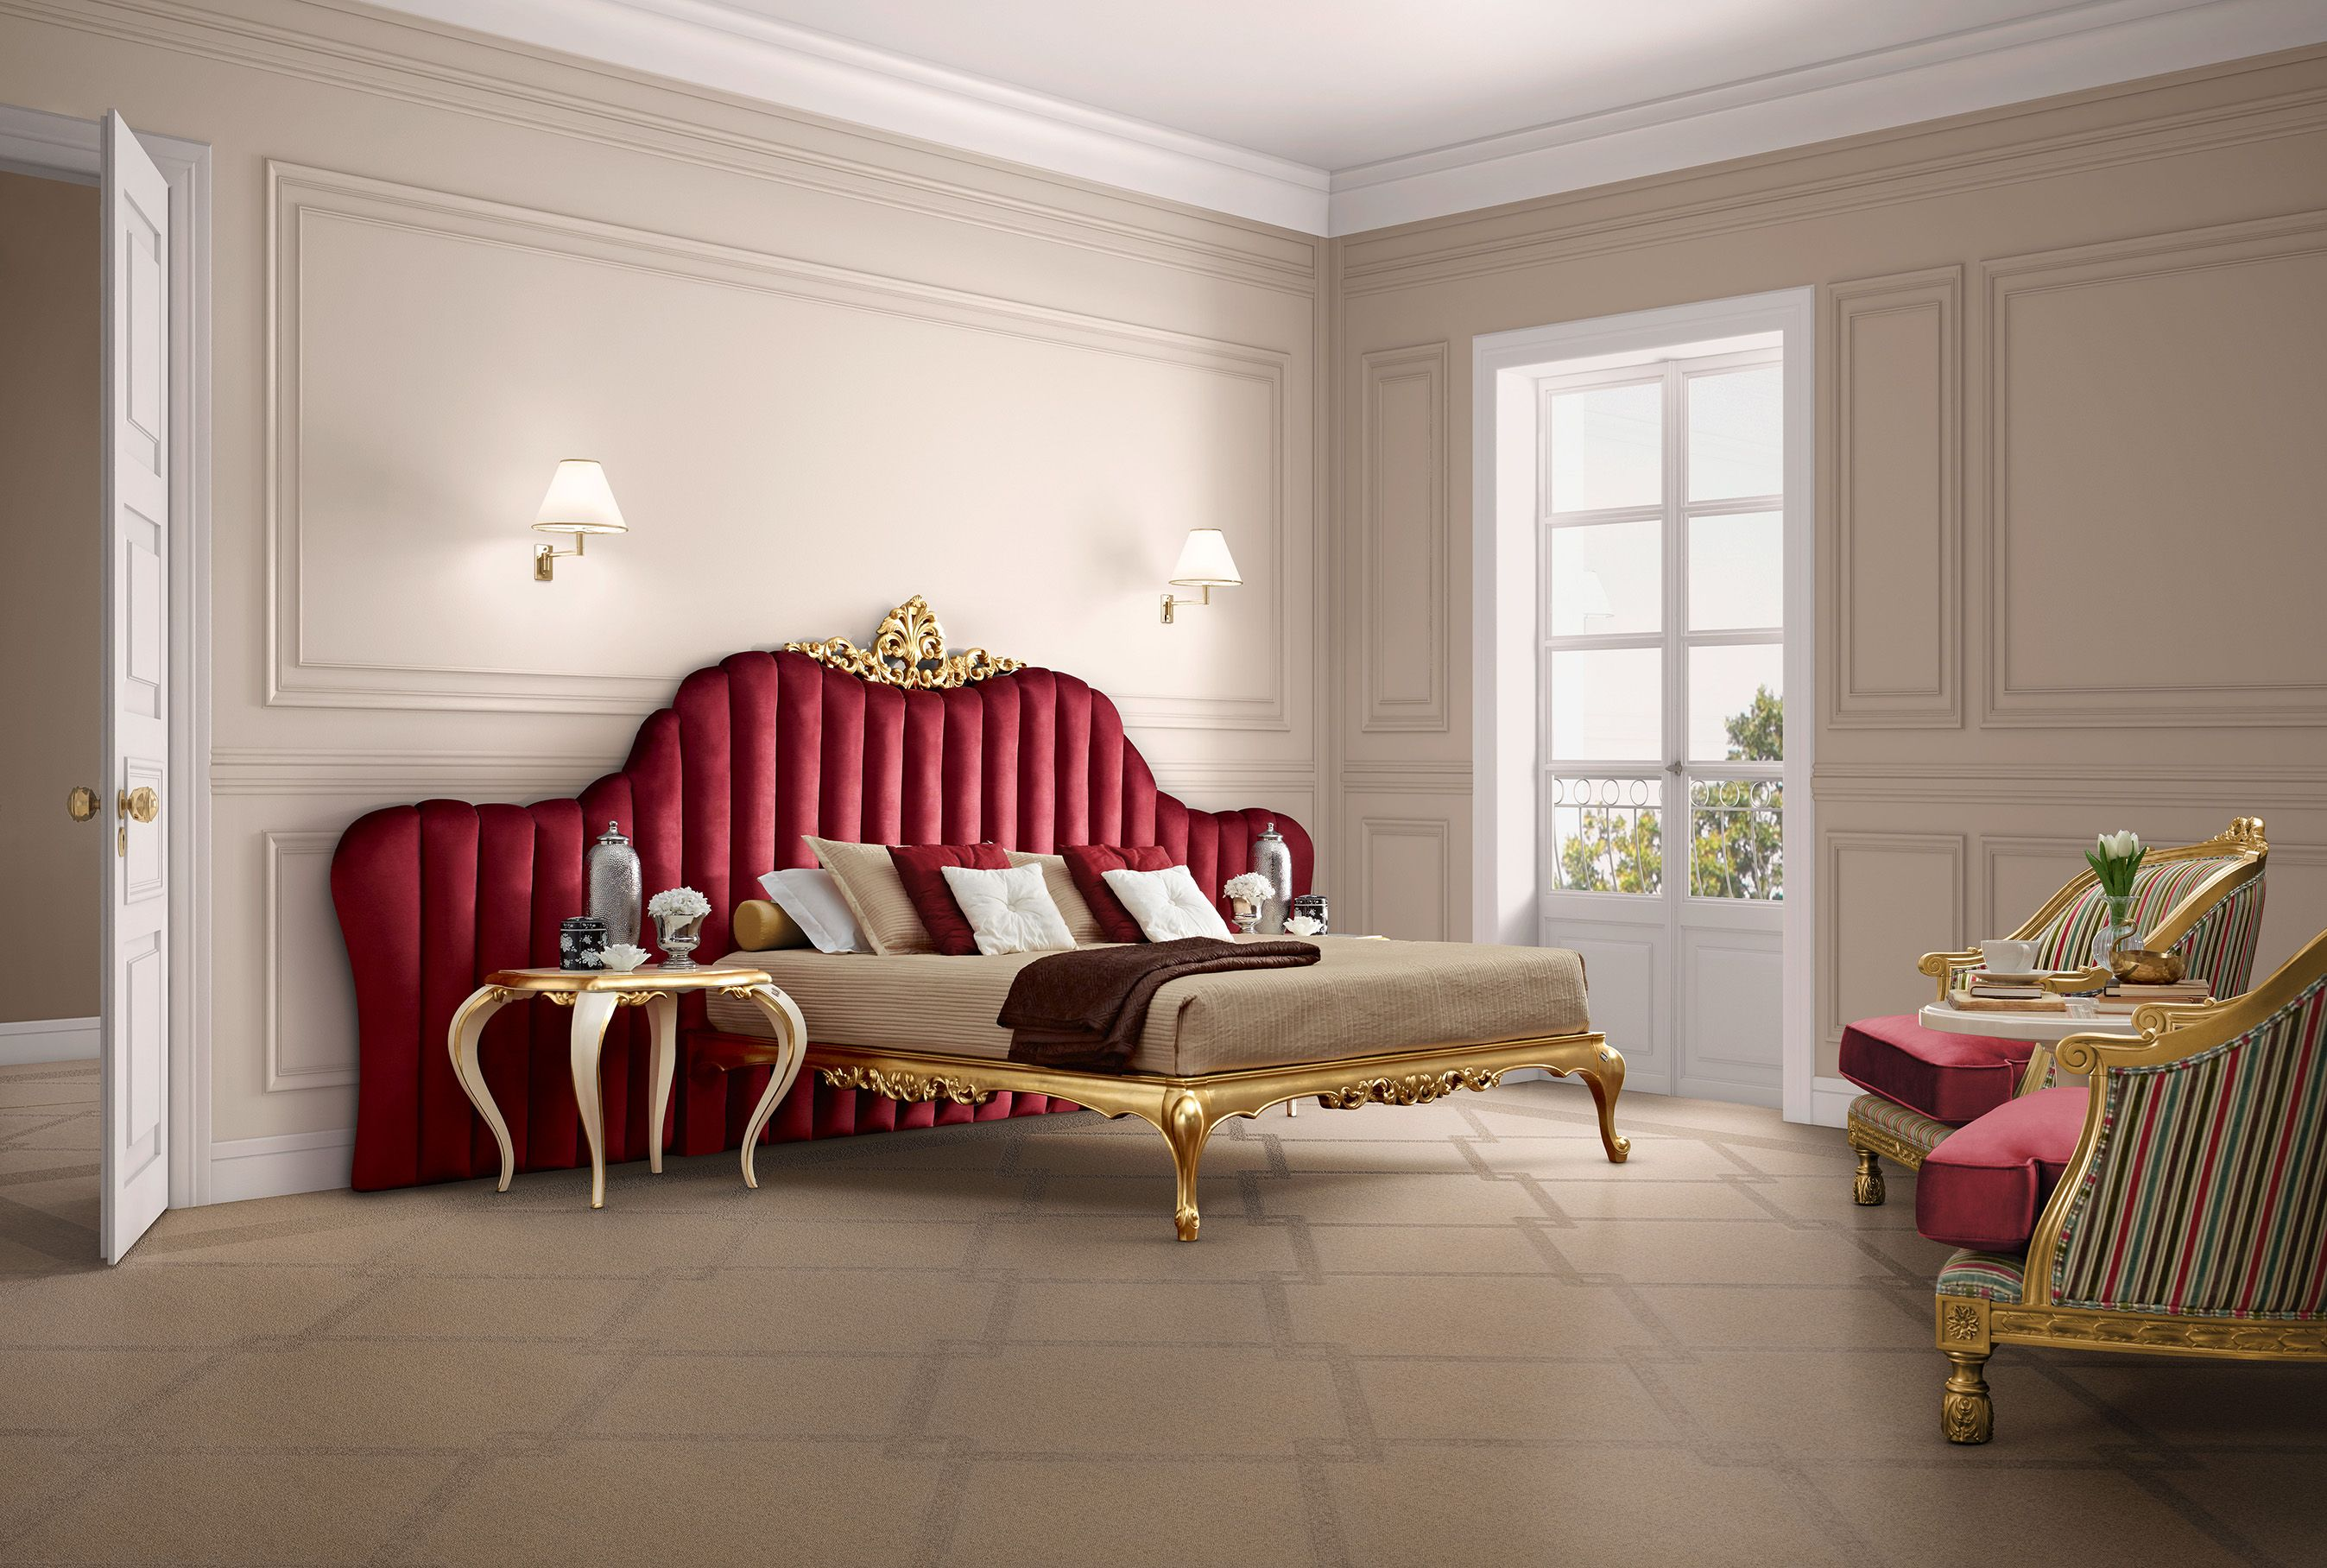 Bed furniture design catalogue - Venezia Upholstered Bed In Red Jetclass Real Furniture Luxury Interior Design Http